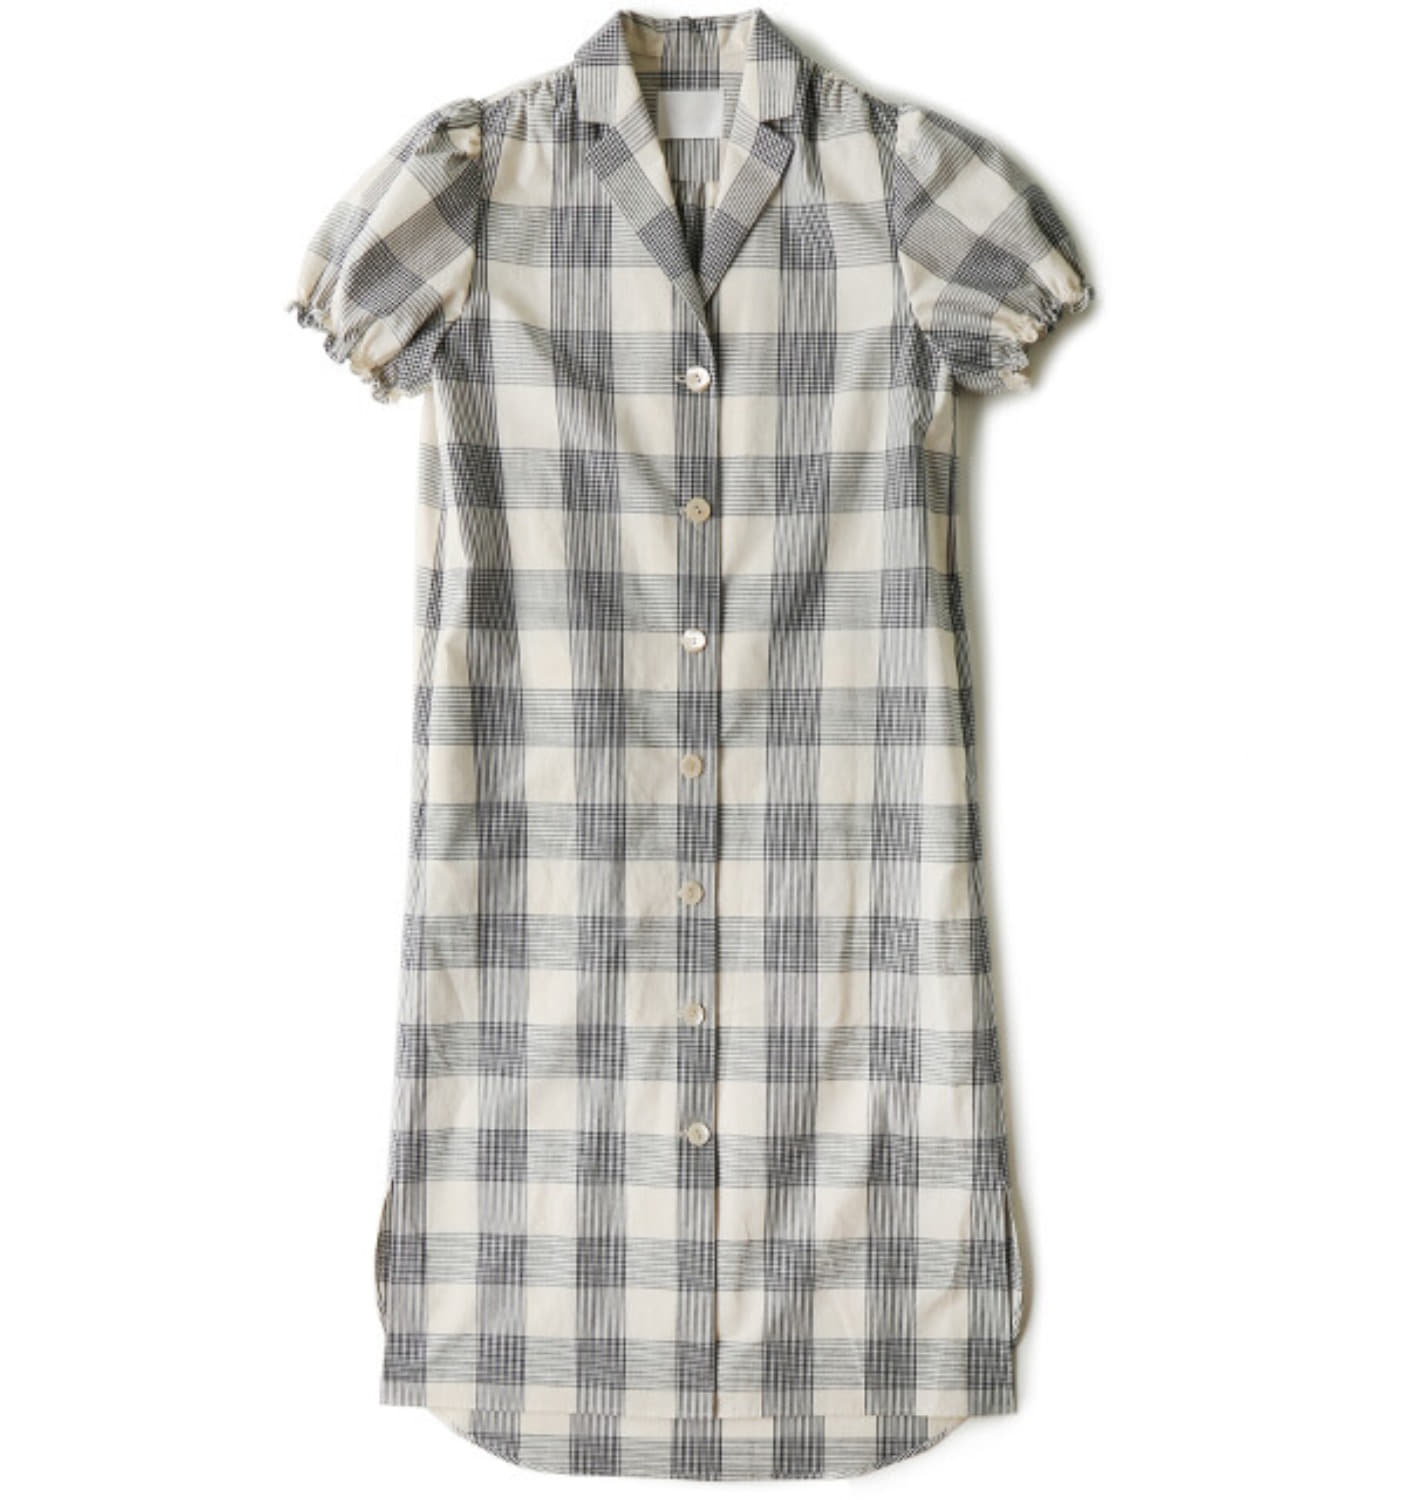 VINTAGE RETRO DRESS INDIGO BIG CHECK